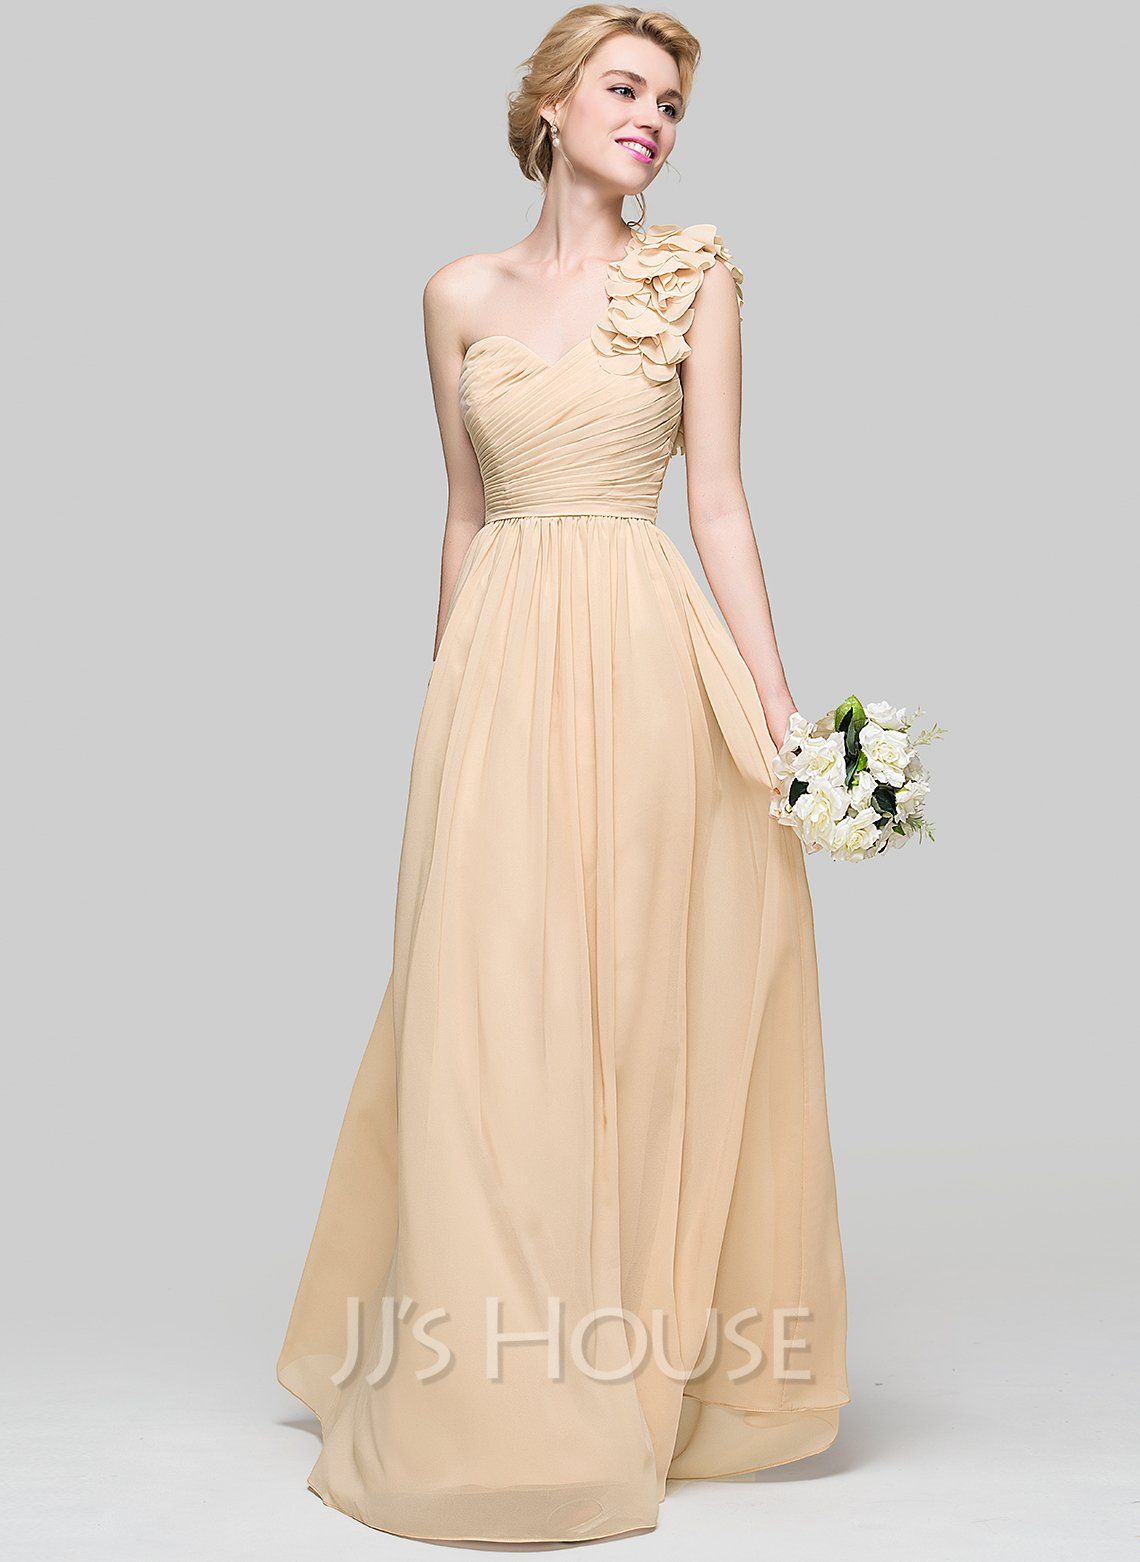 A-Line One-Shoulder Floor-Length Chiffon Prom Dresses With Ruffle Flower(s)